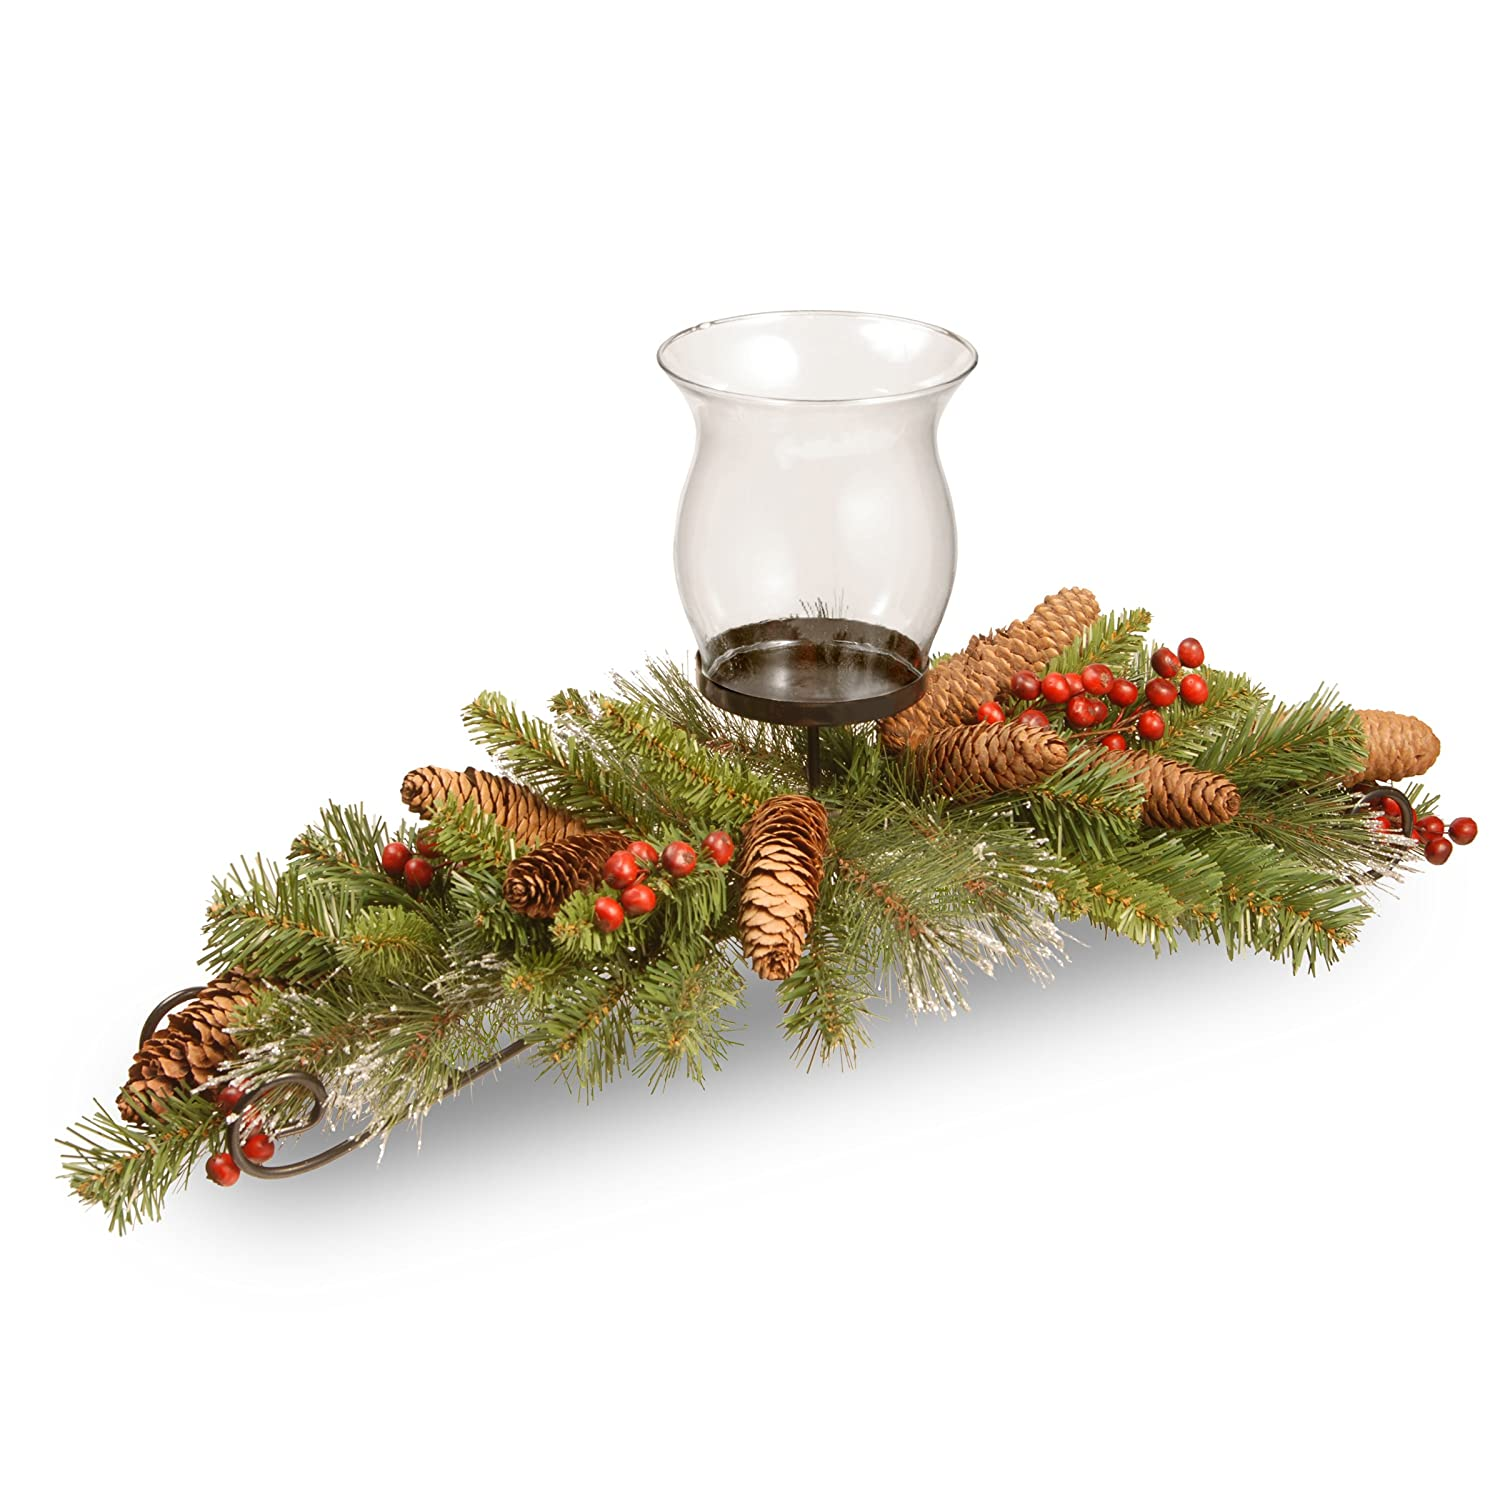 Crestwood Spruce Pine Conecandle Holder Centerpiece